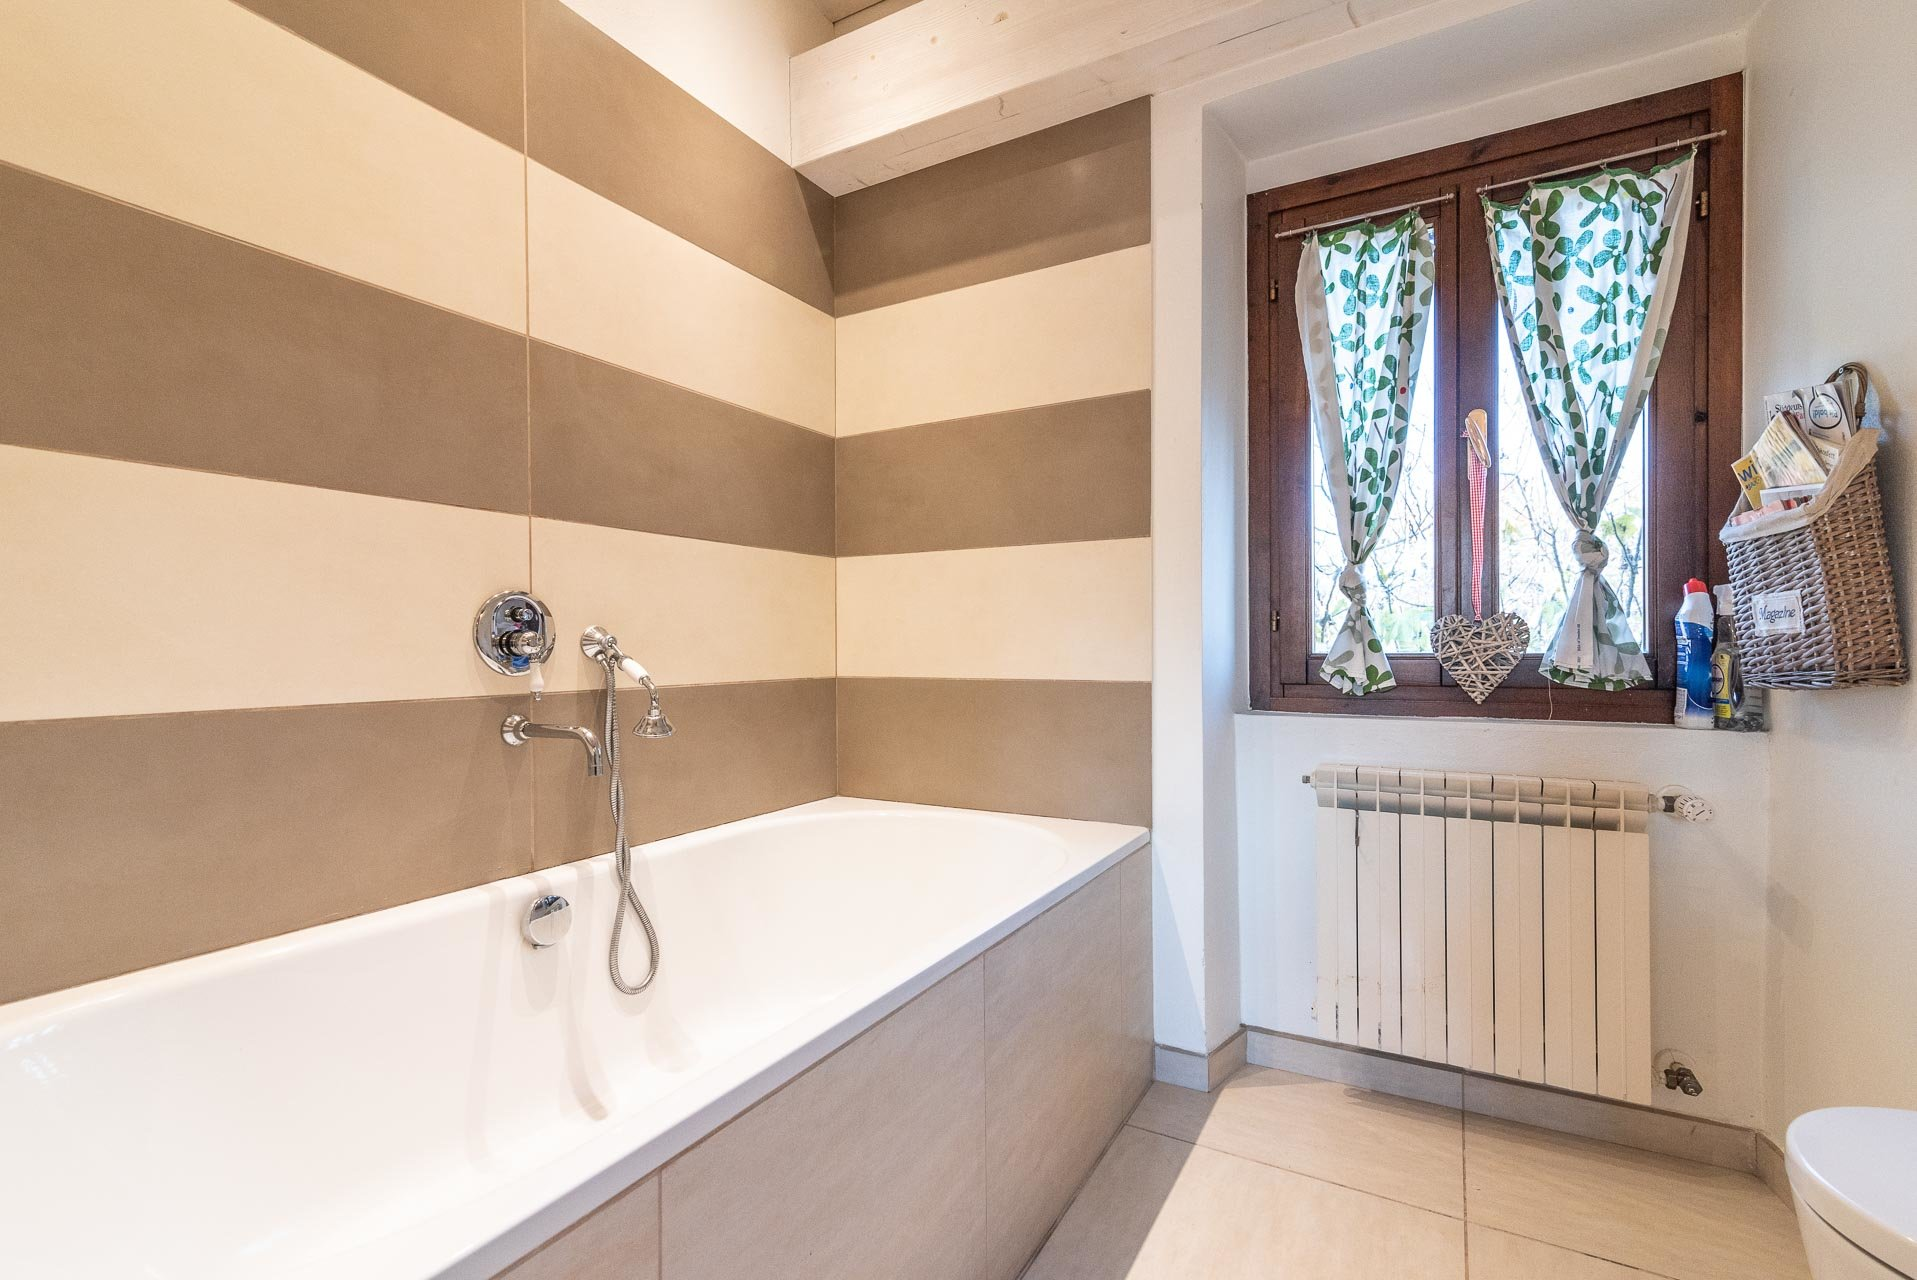 Country house for sell in Paruzzaro - bathtub